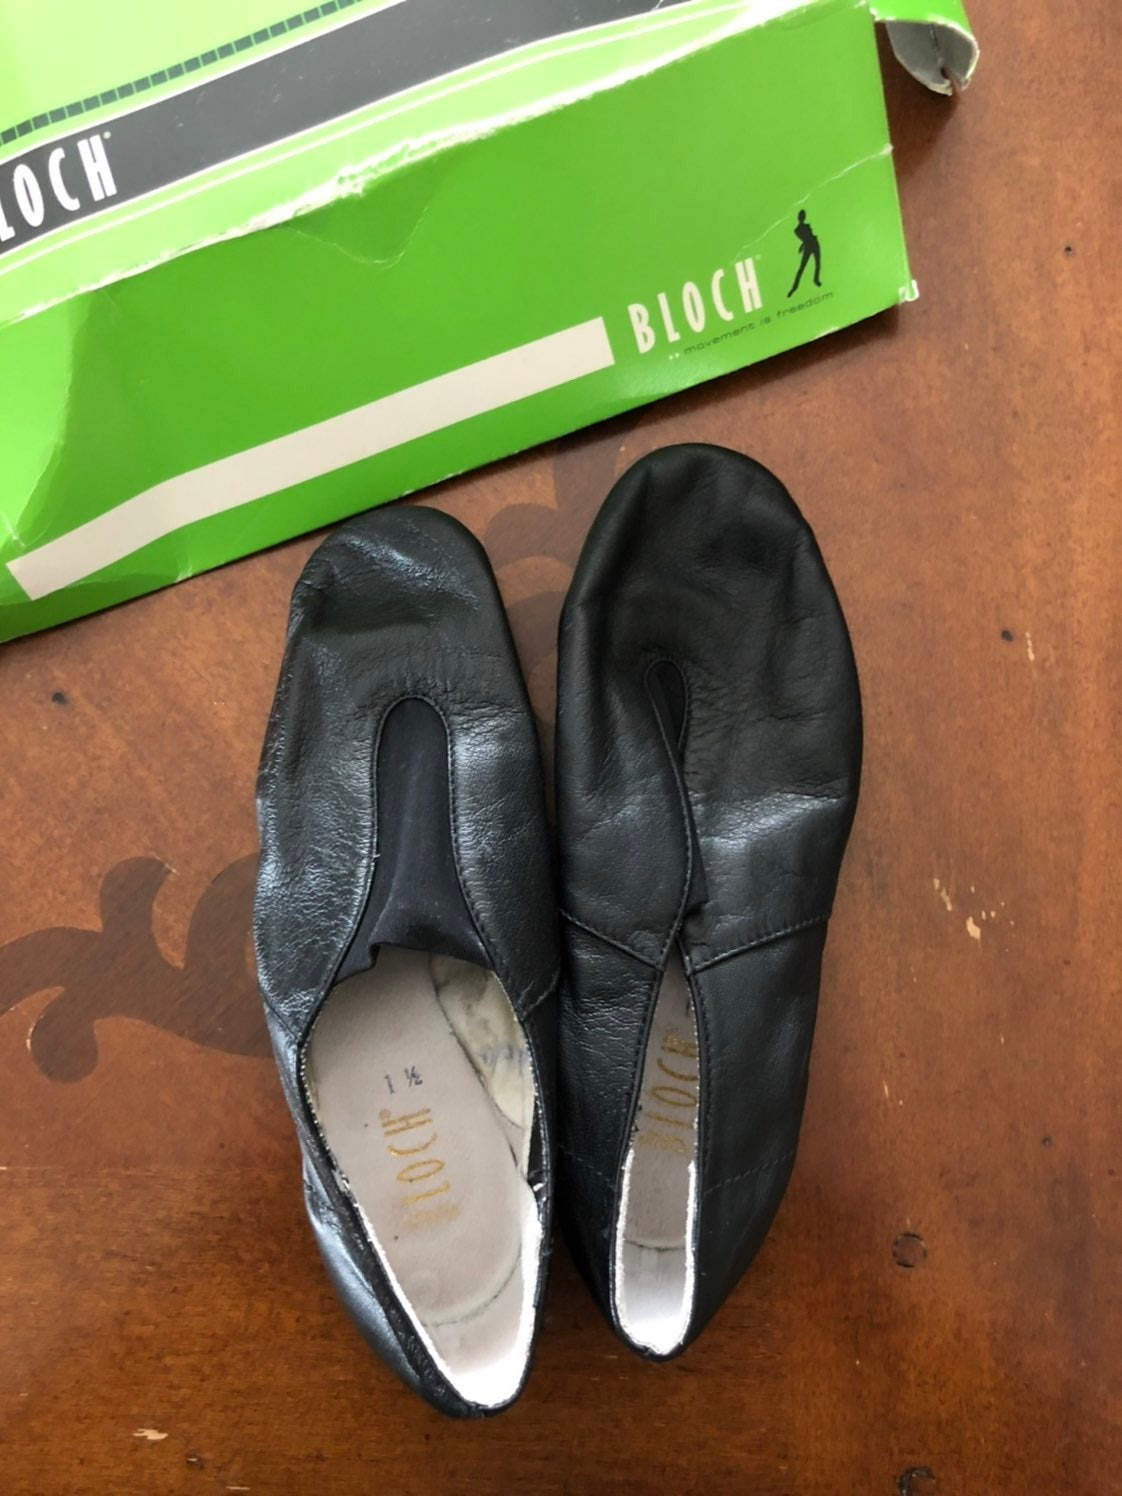 NEW Leather Black Ballet Shoes